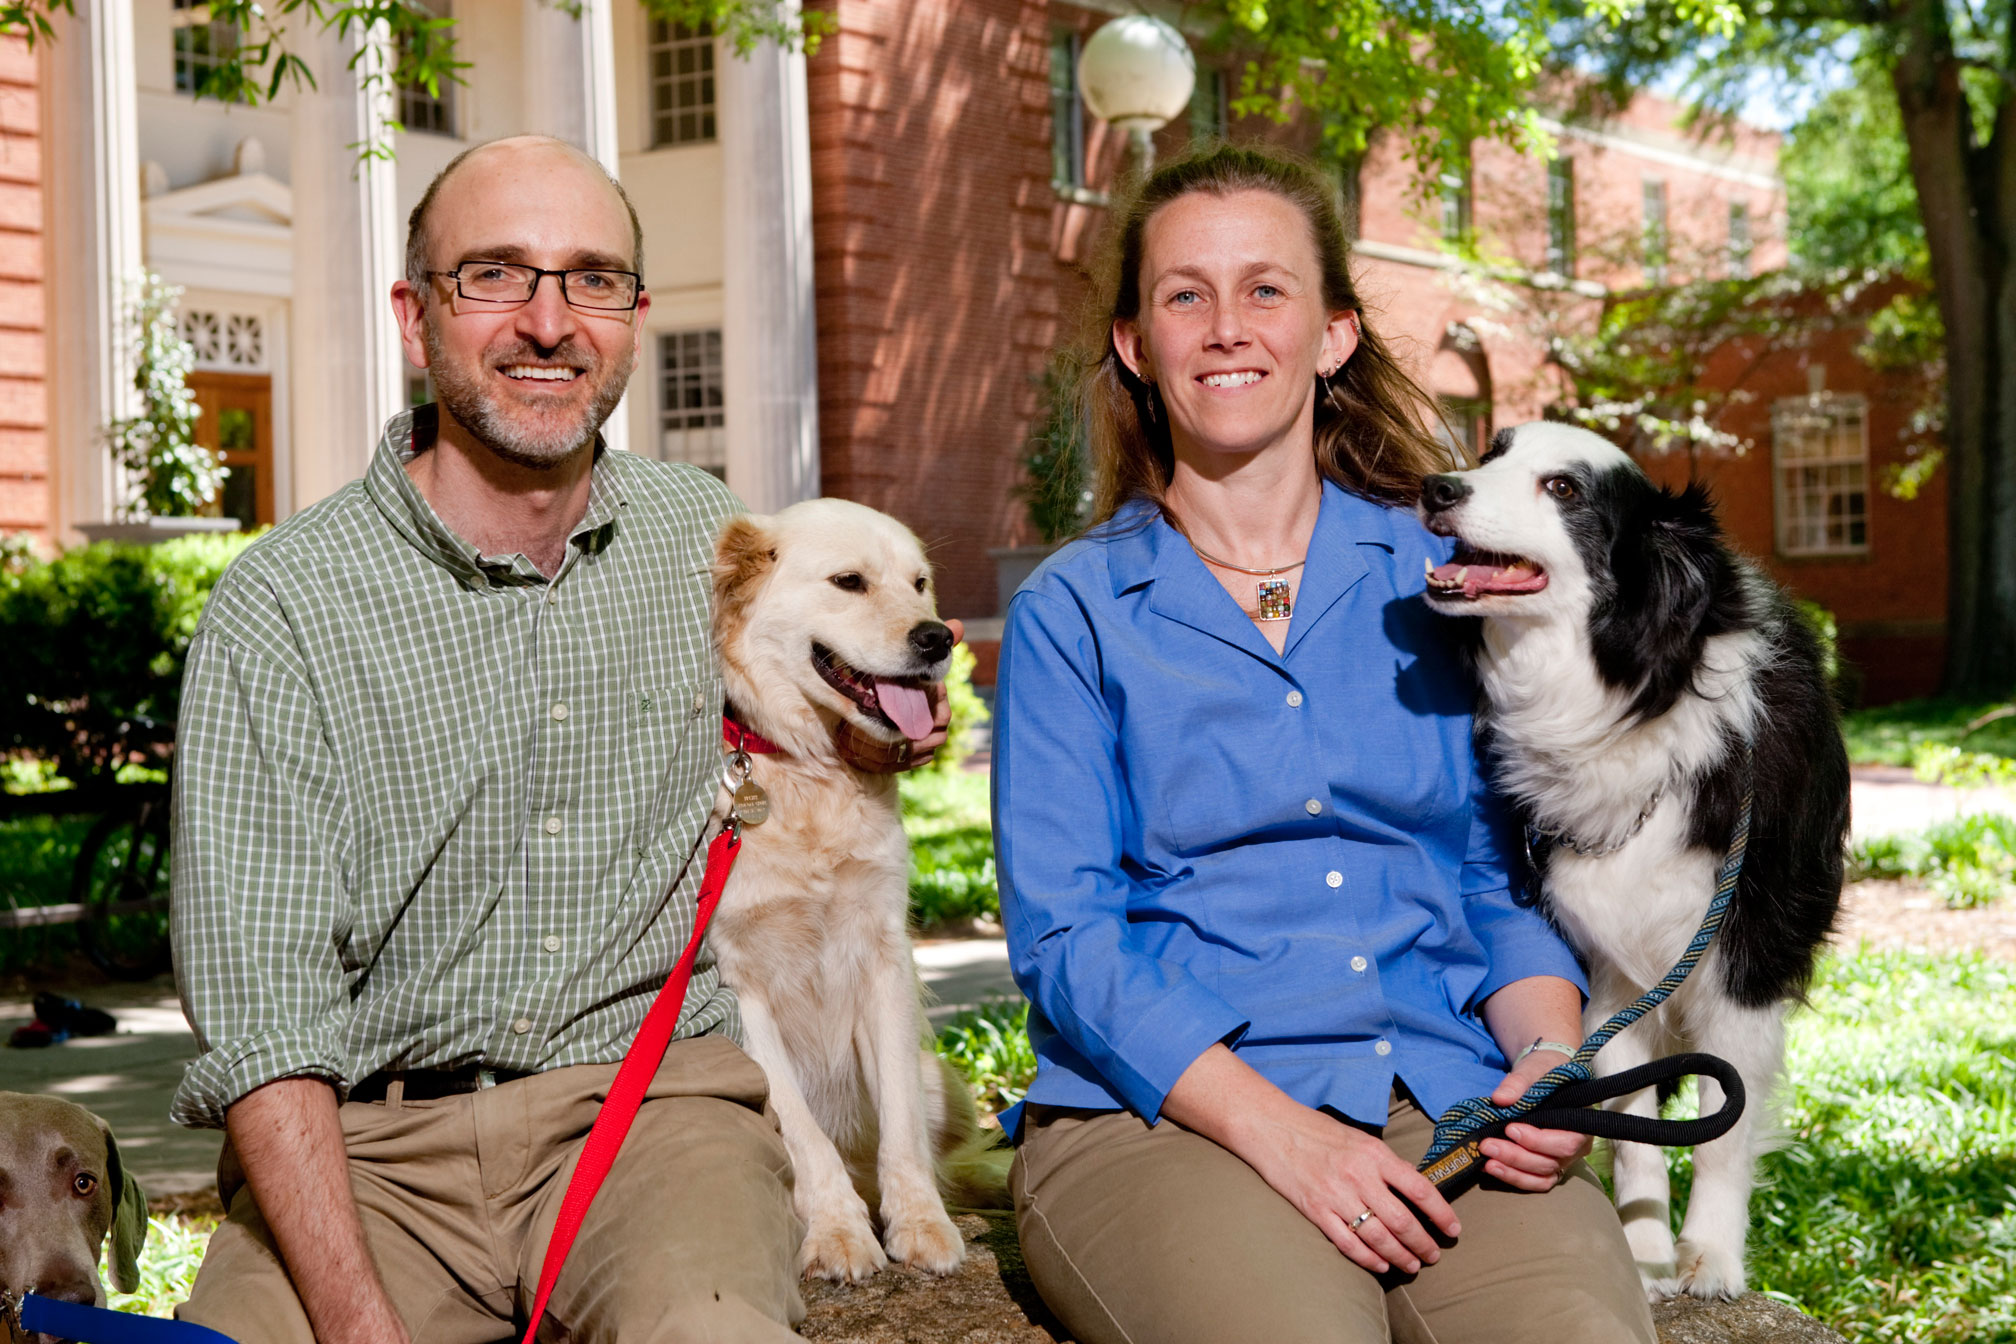 UGA research finds sterilized dogs live longer - UGA Today